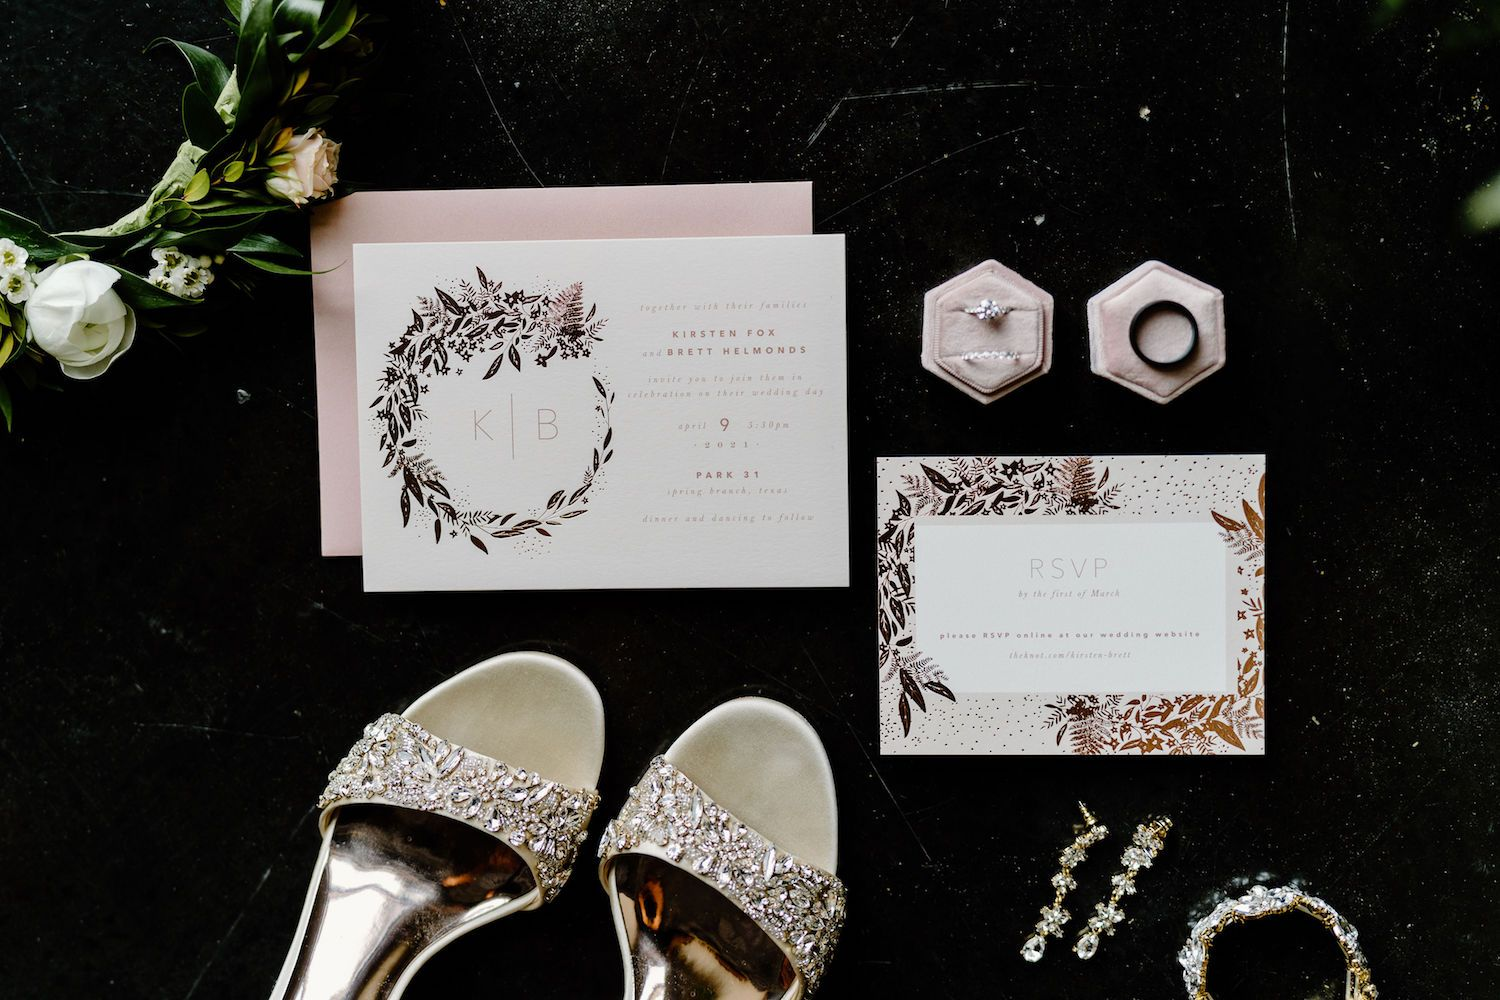 A flat lay showcases a couple's black, white, and blush floral wedding invitations, the bride's jewelry, and her dazzling wedding shoes.